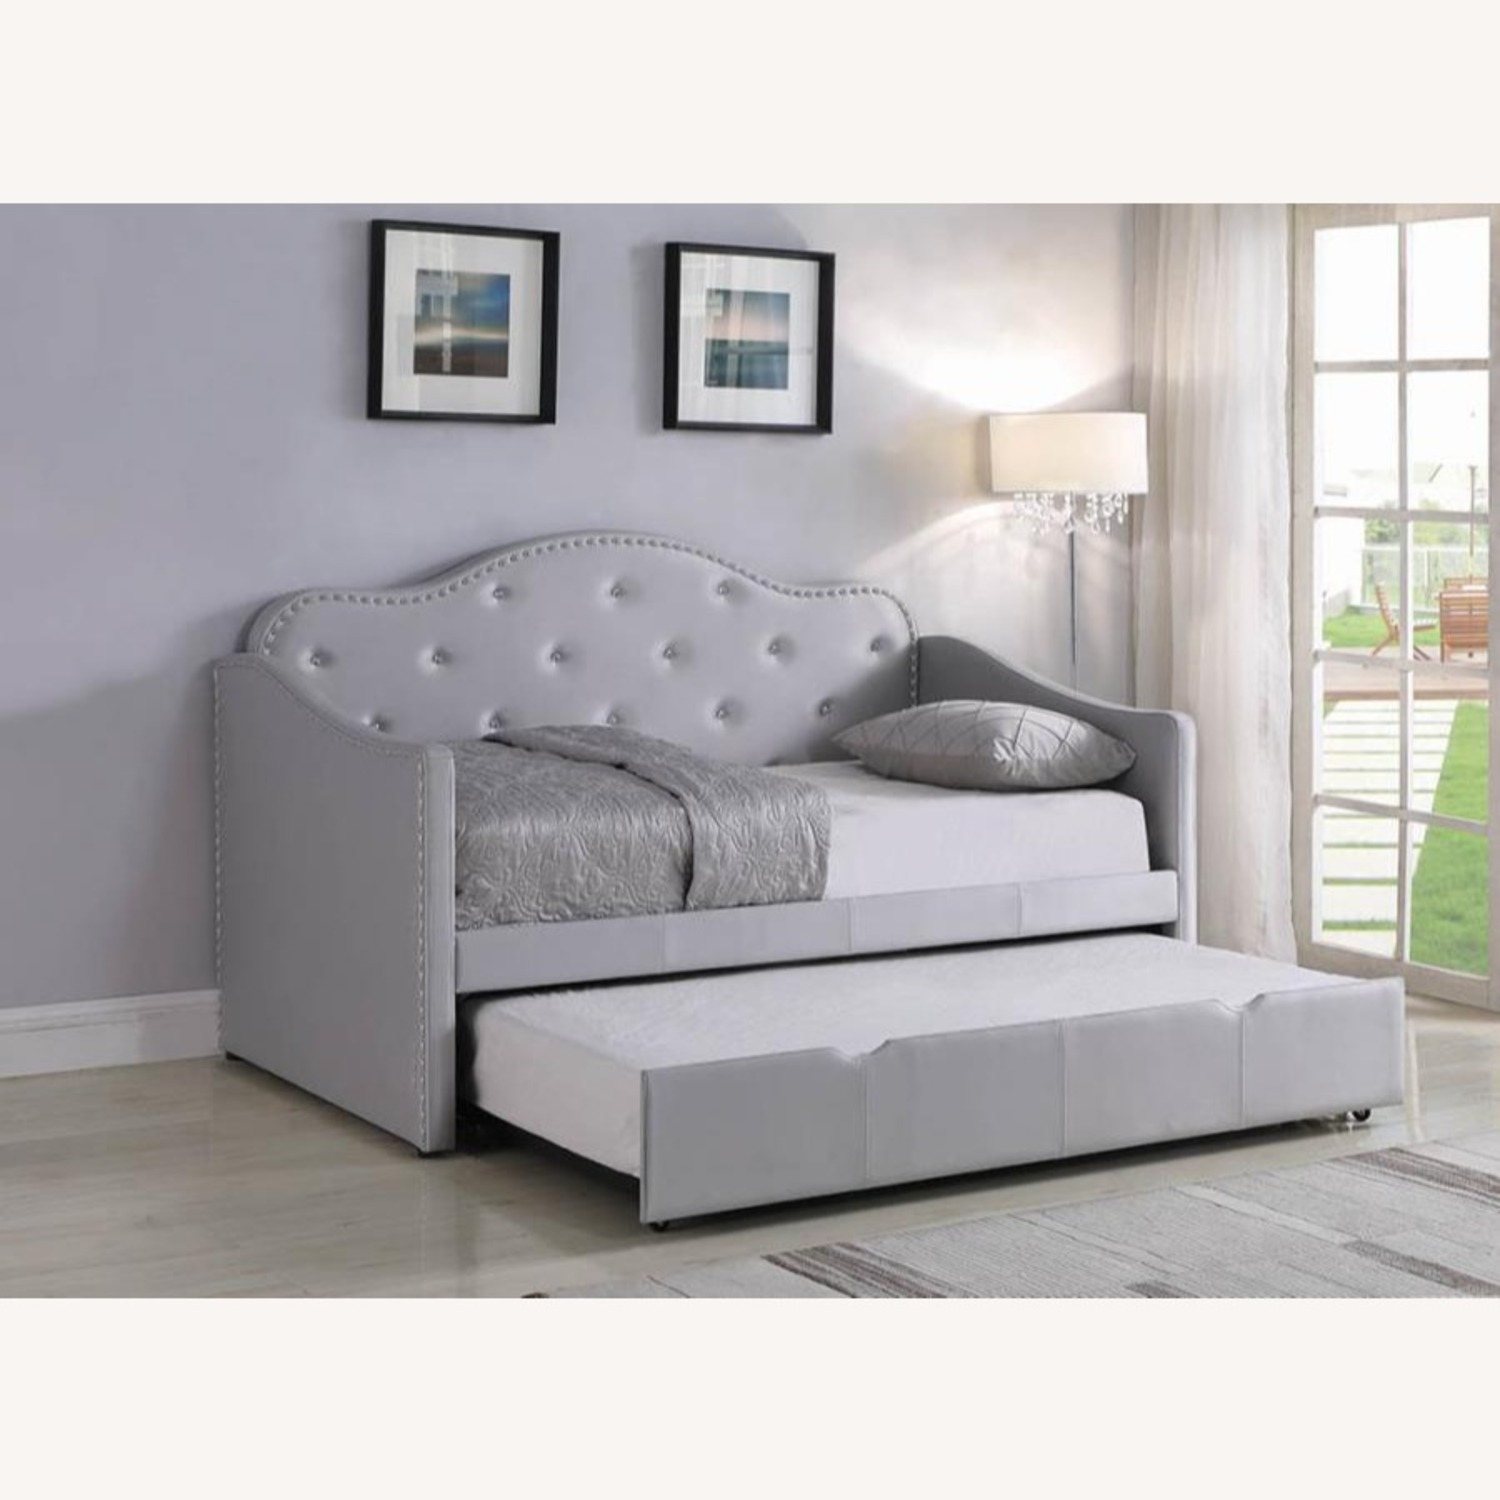 Daybed In Pearlescent Grey Leatherette Finish - image-7